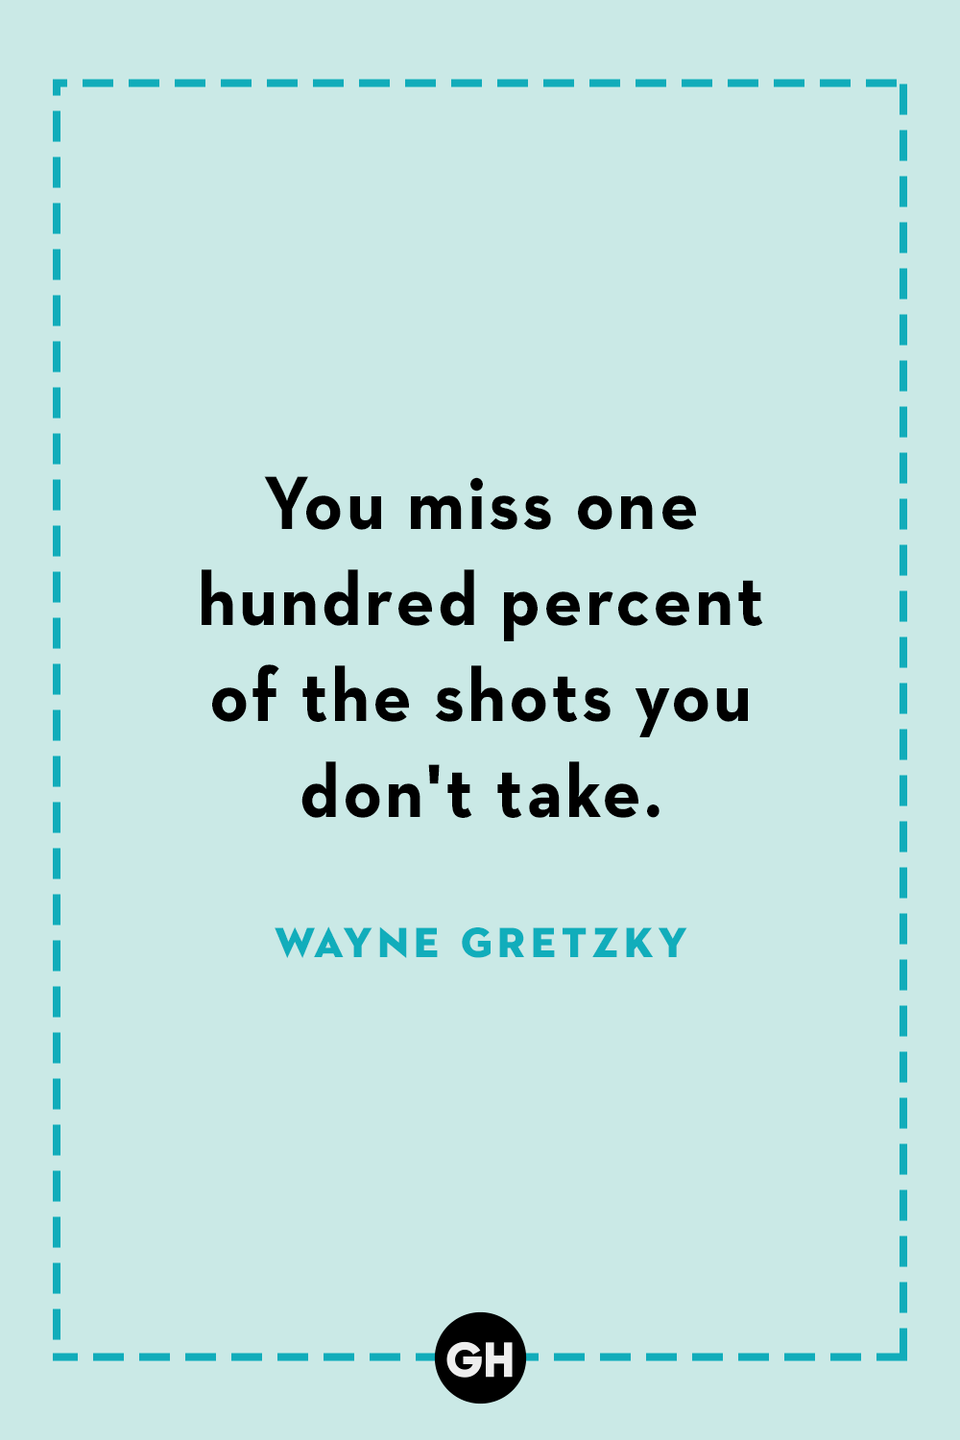 <p>You miss one hundred percent of the shots you don't take.</p>